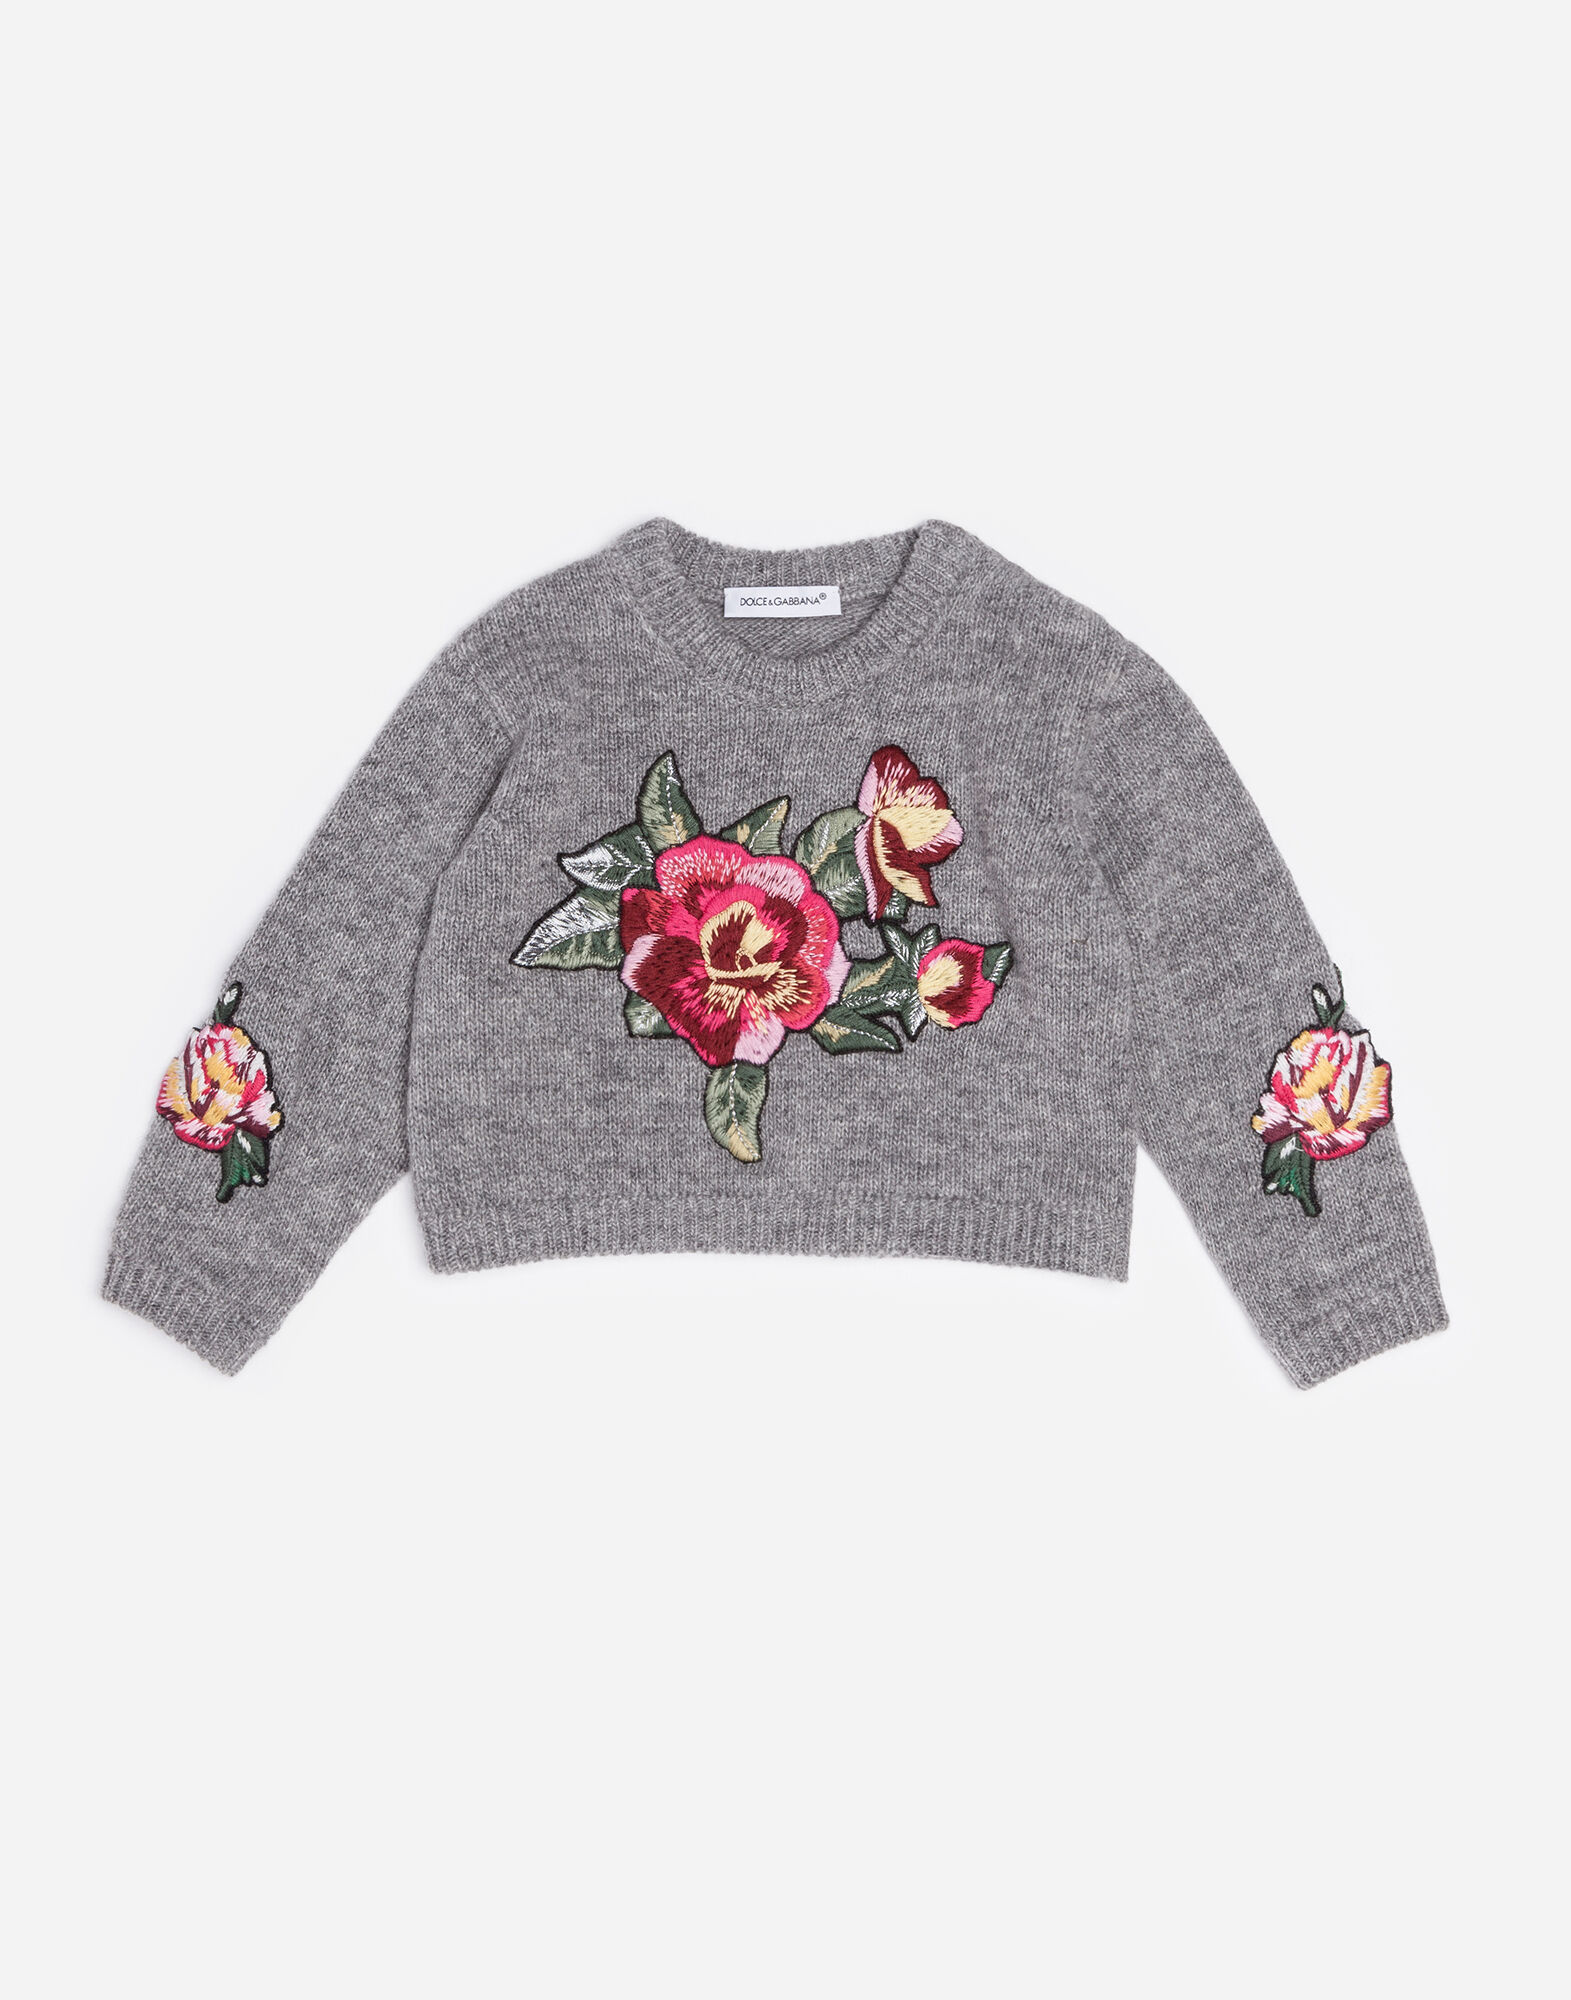 VIRGIN WOOL SWEATER WITH EMBROIDERY